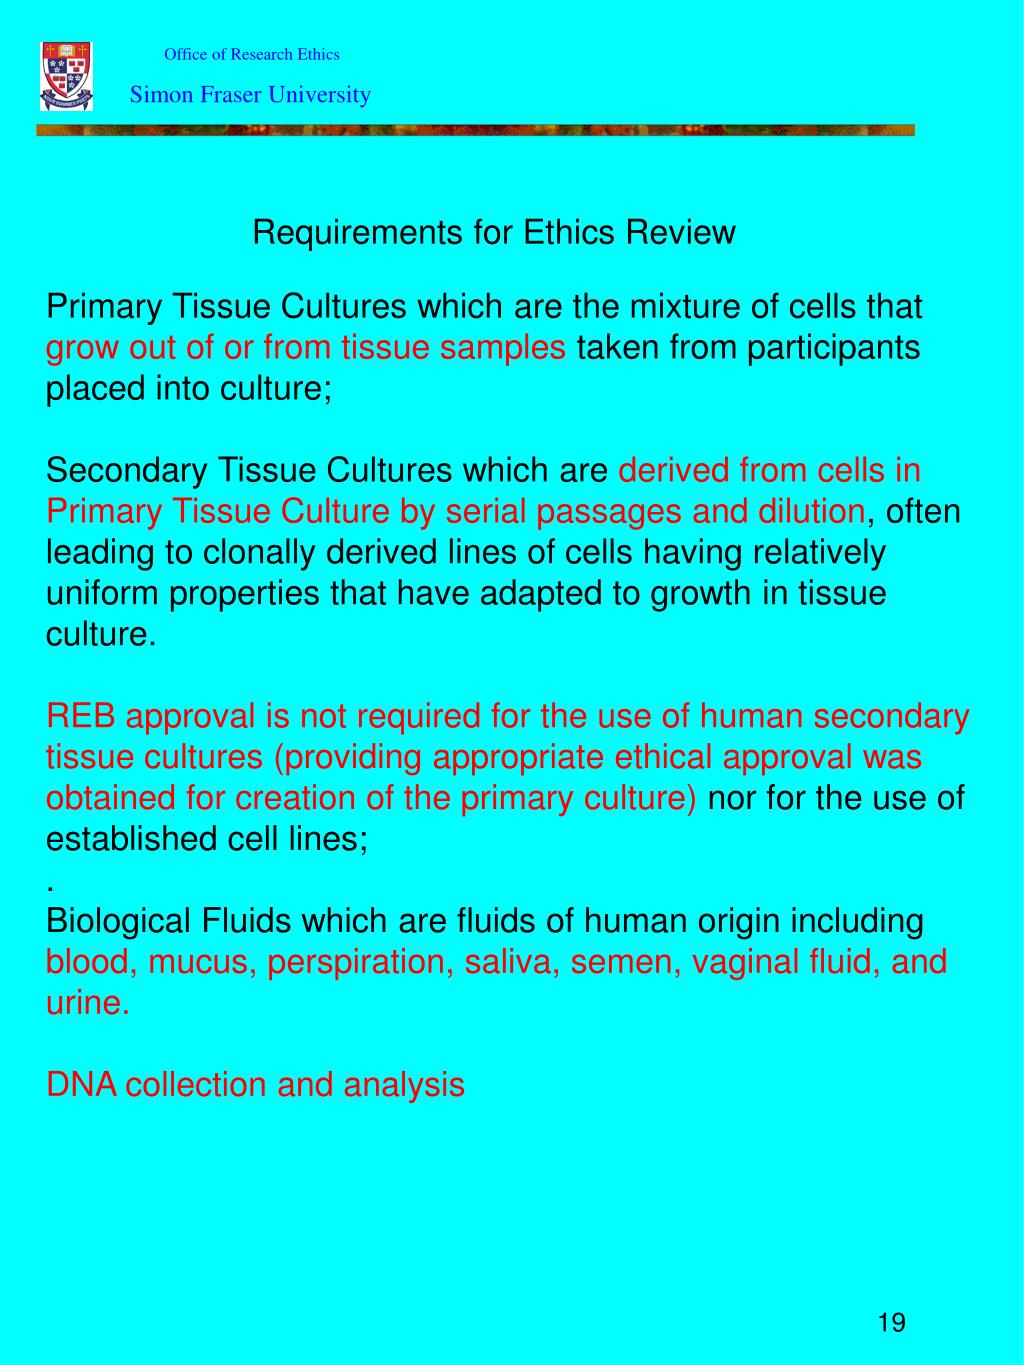 Office of Research Ethics